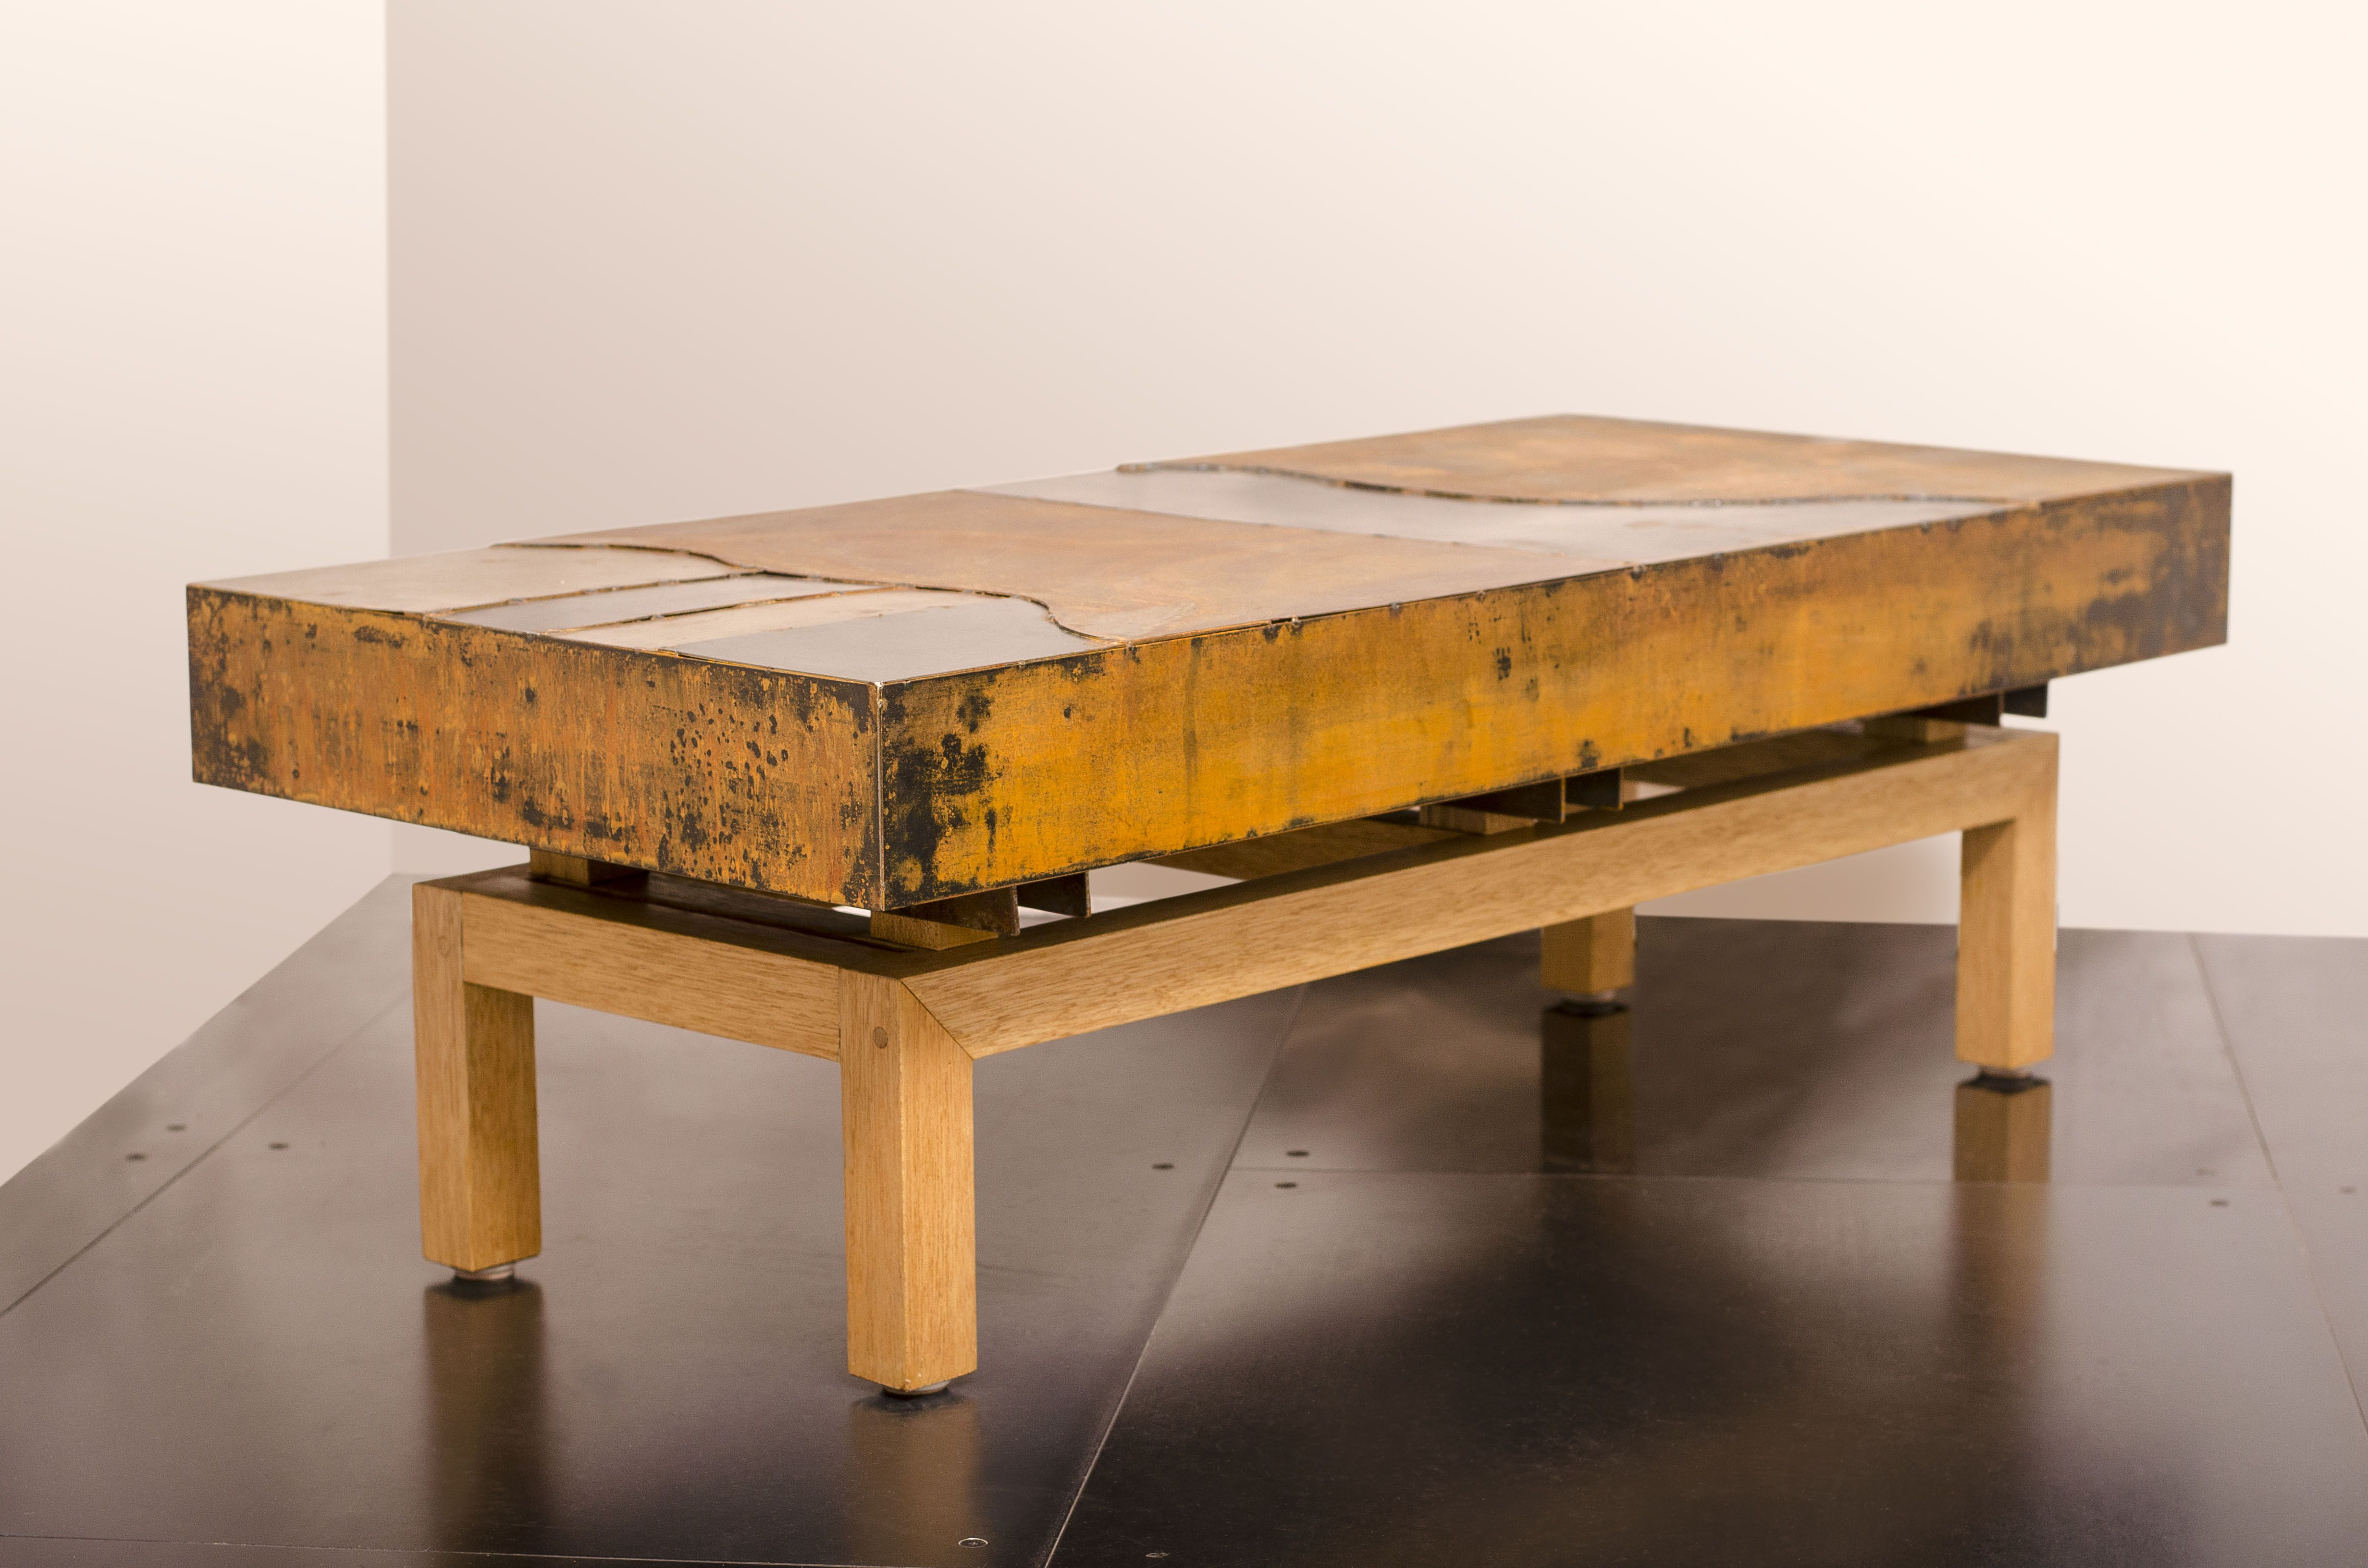 Hand crafted industrial steel coffee table metal mix graft wood base by visual metals llc Industrial metal coffee table